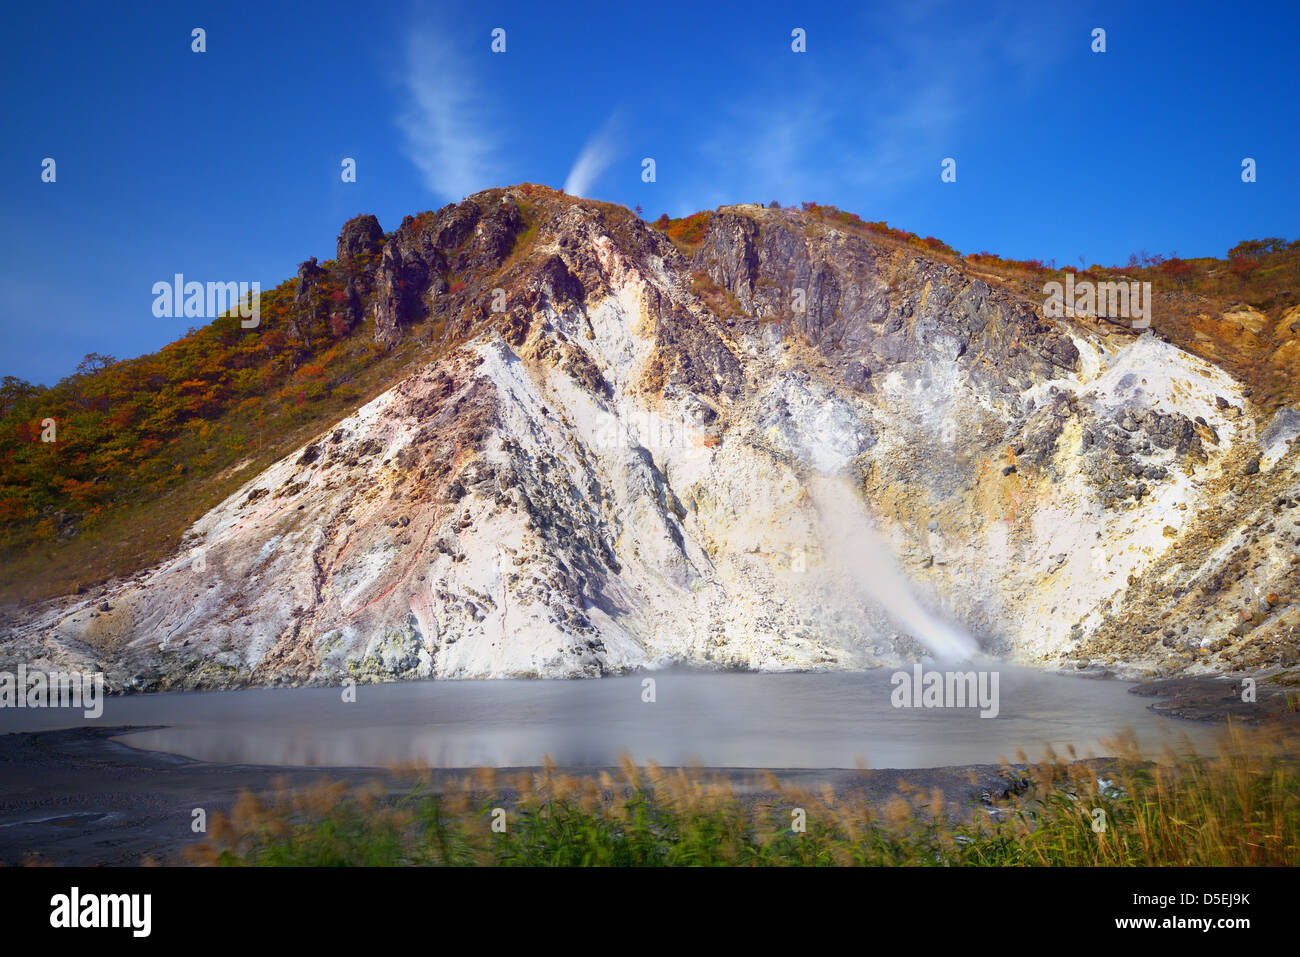 Oyunuma, a sulfurous pond at Hell Valley in Noboribetsu, Japan. - Stock Image